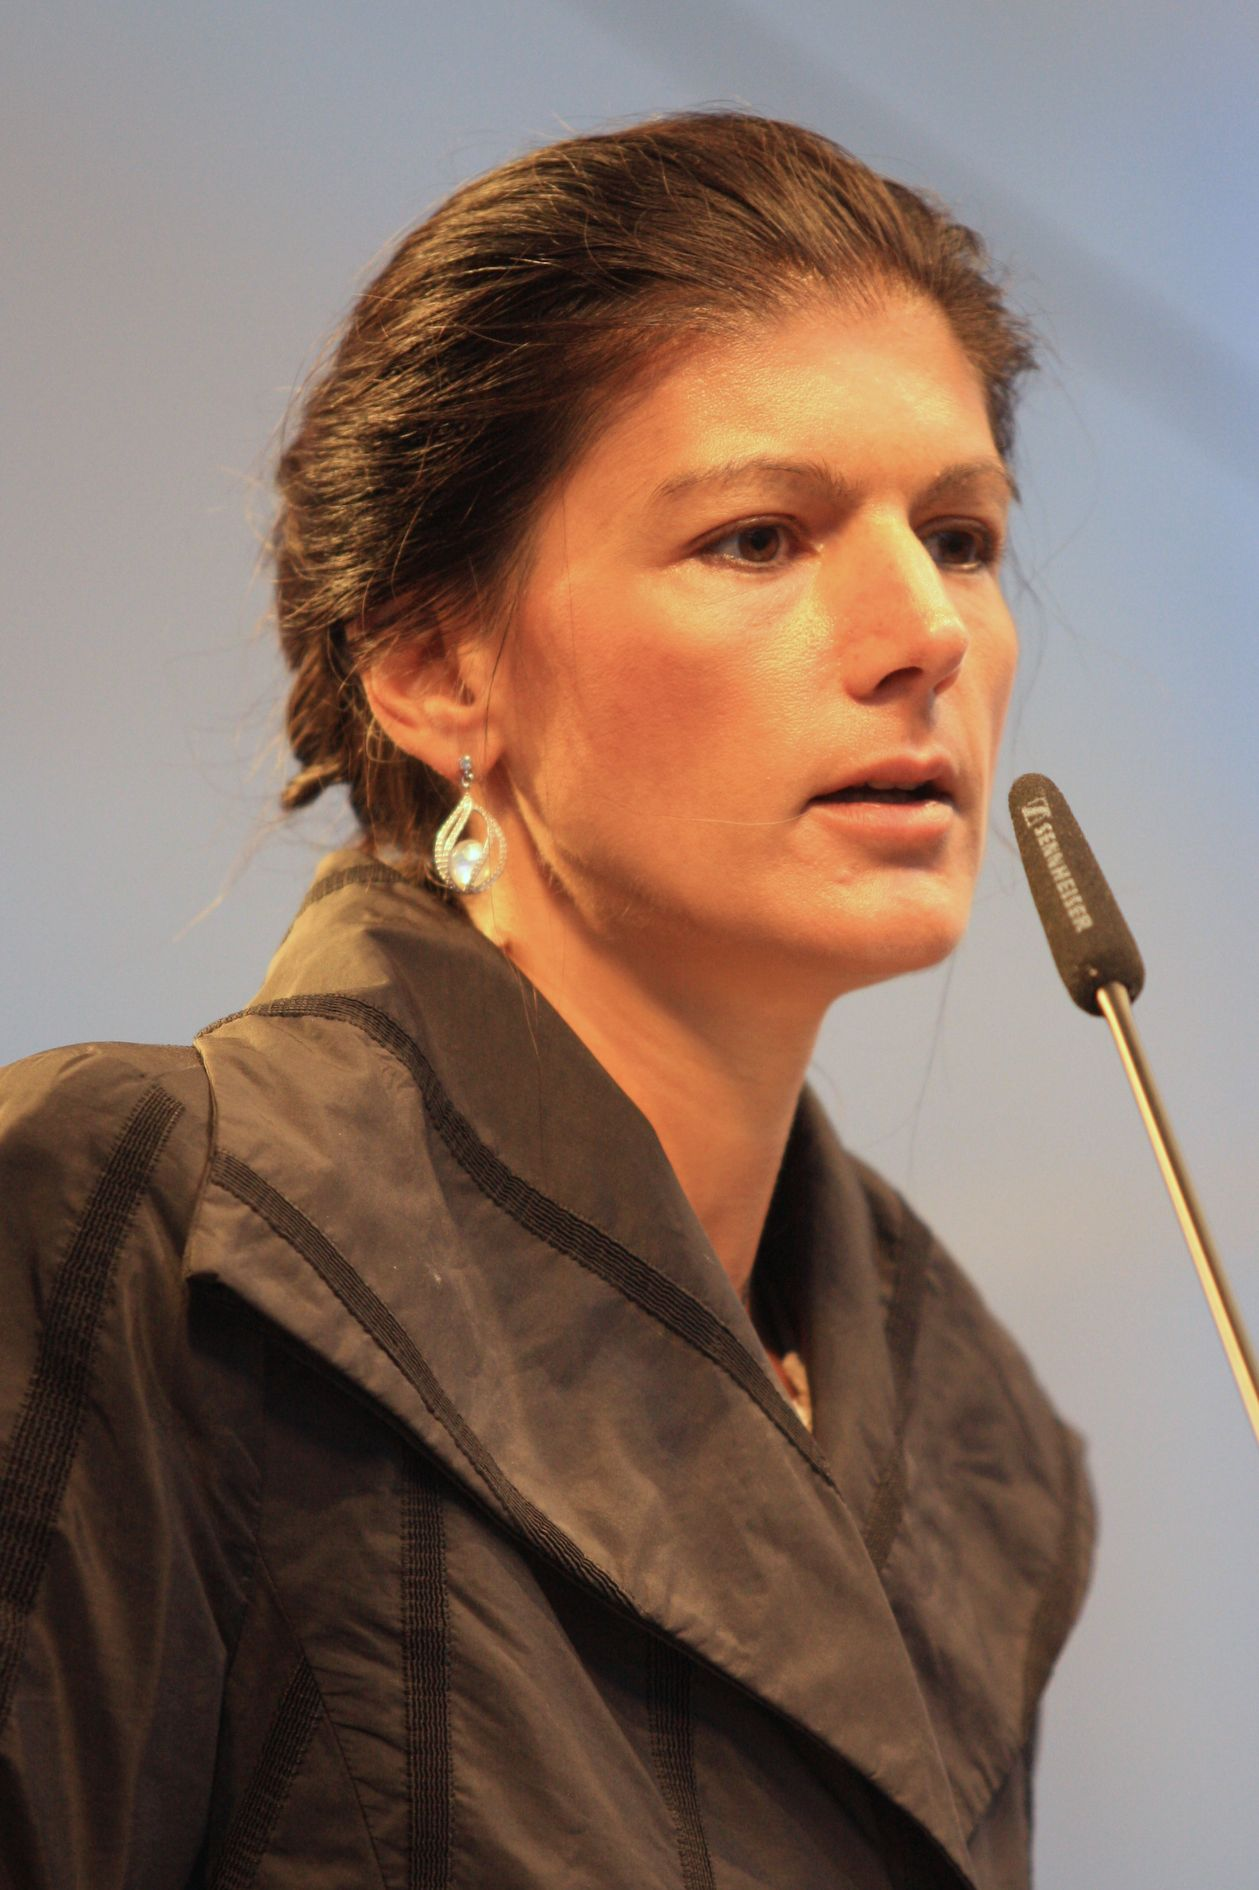 https://upload.wikimedia.org/wikipedia/commons/1/1a/2013-09-12_Sahra_Wagenknecht_370.JPG